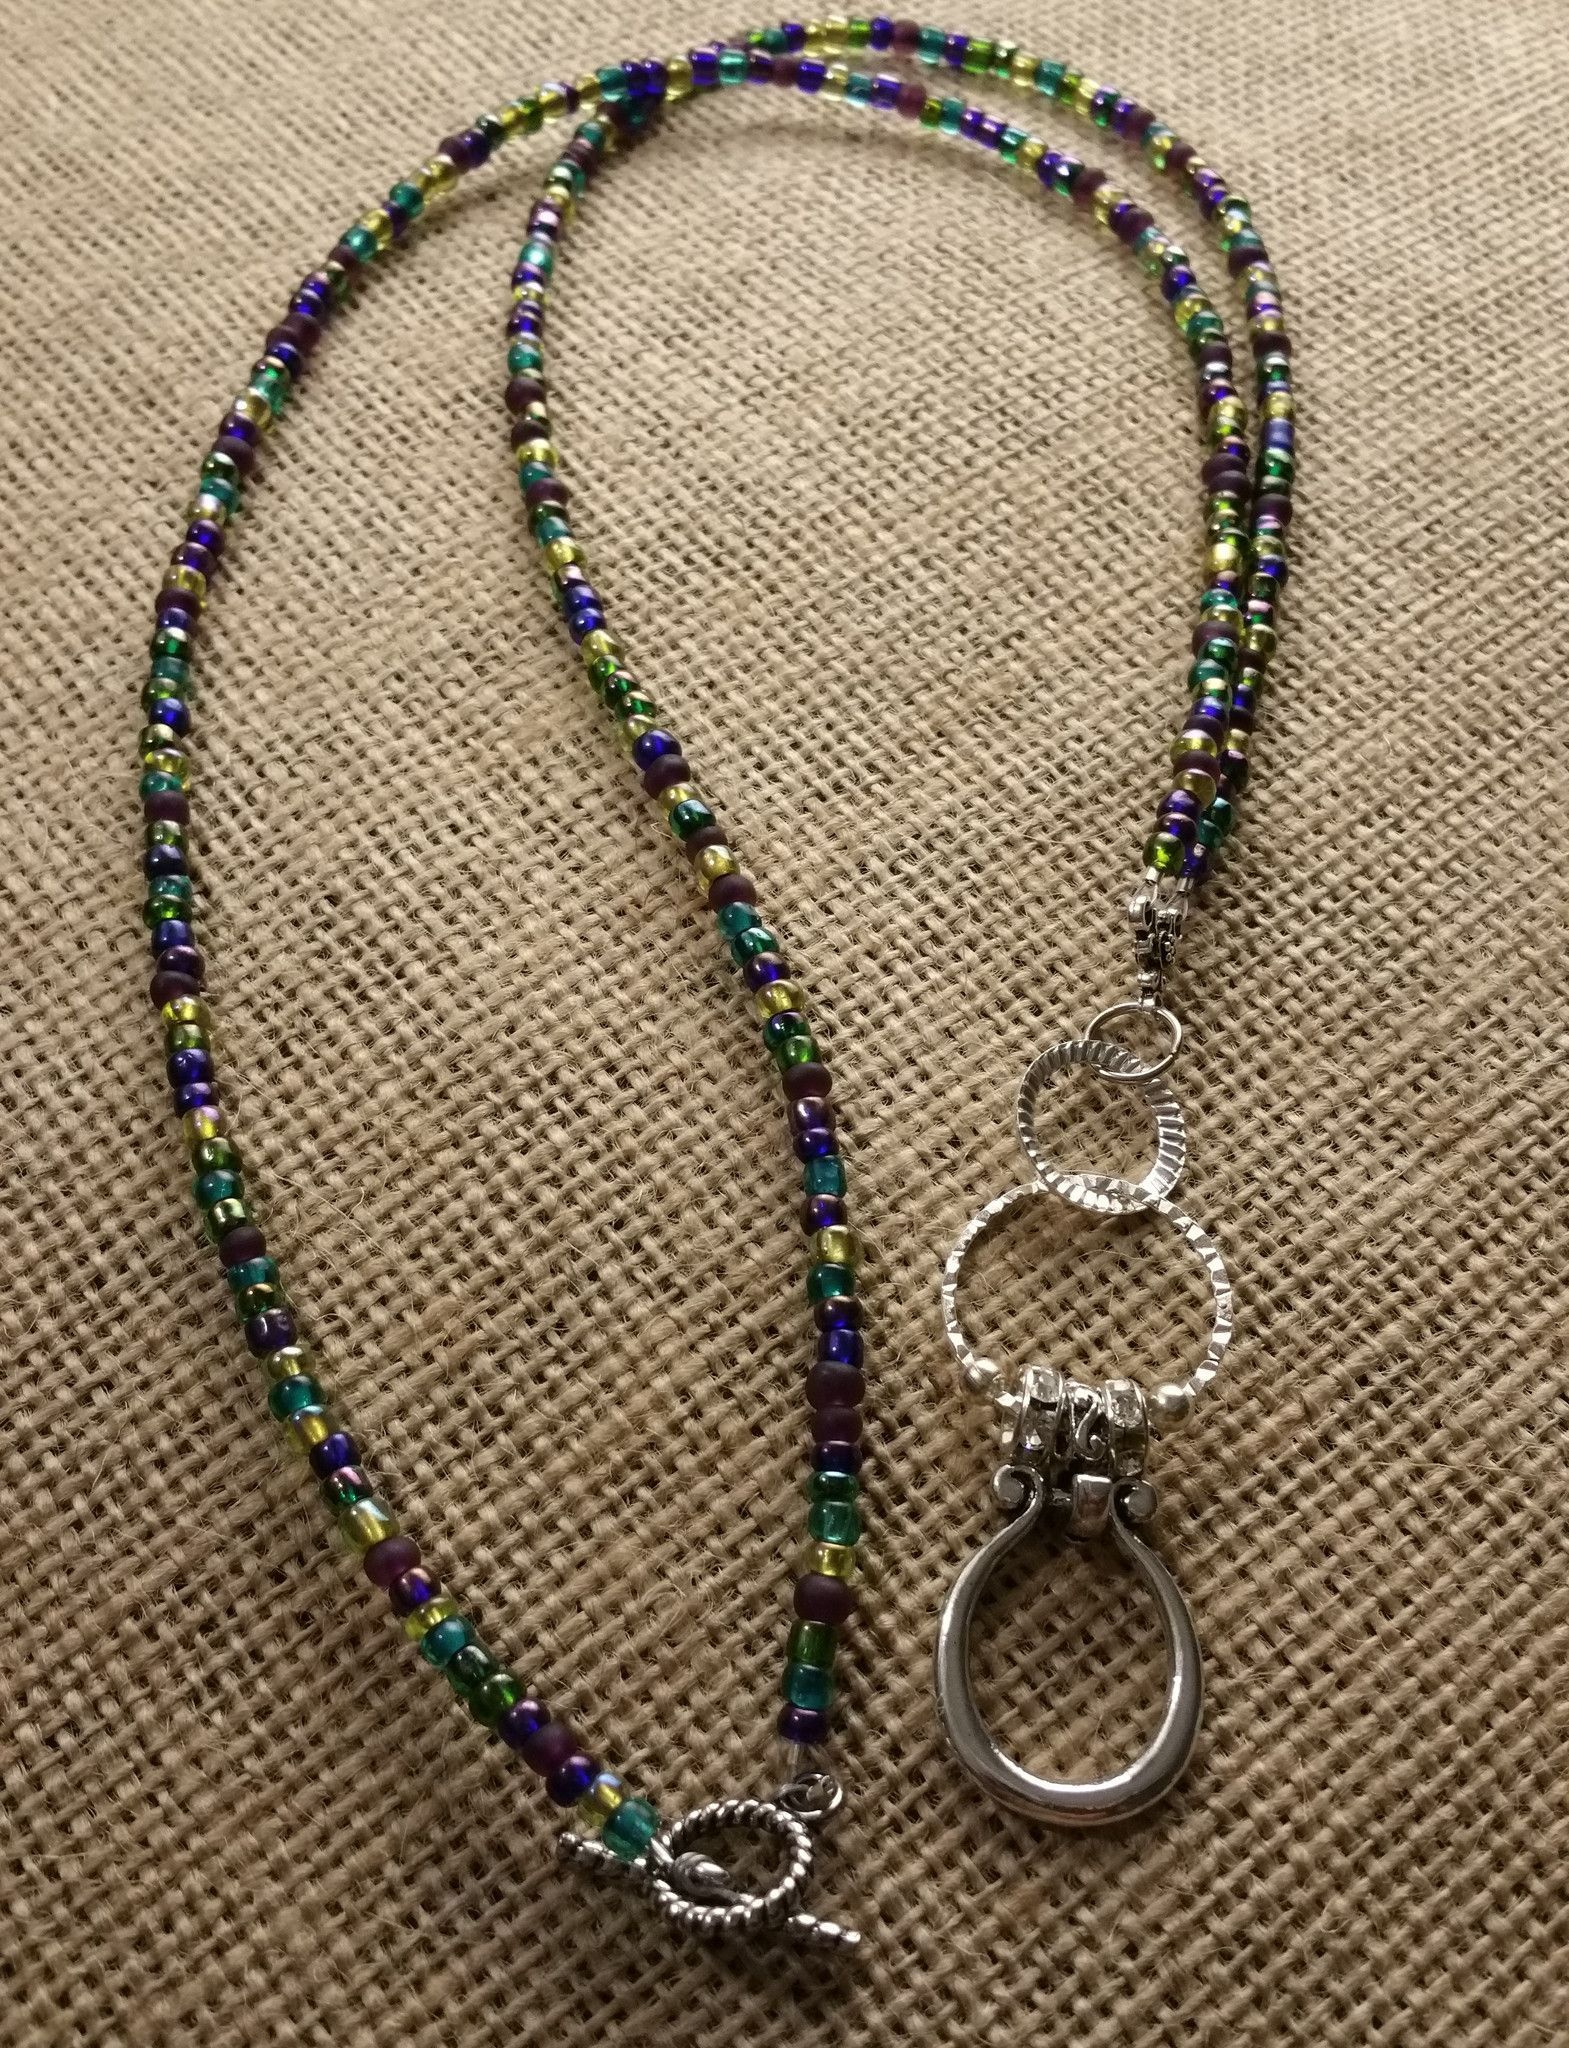 f7833cc13420 Folding Style Functional Necklace Eyeglass Holder in Peacock with Silver  Links and Toggle Clasp